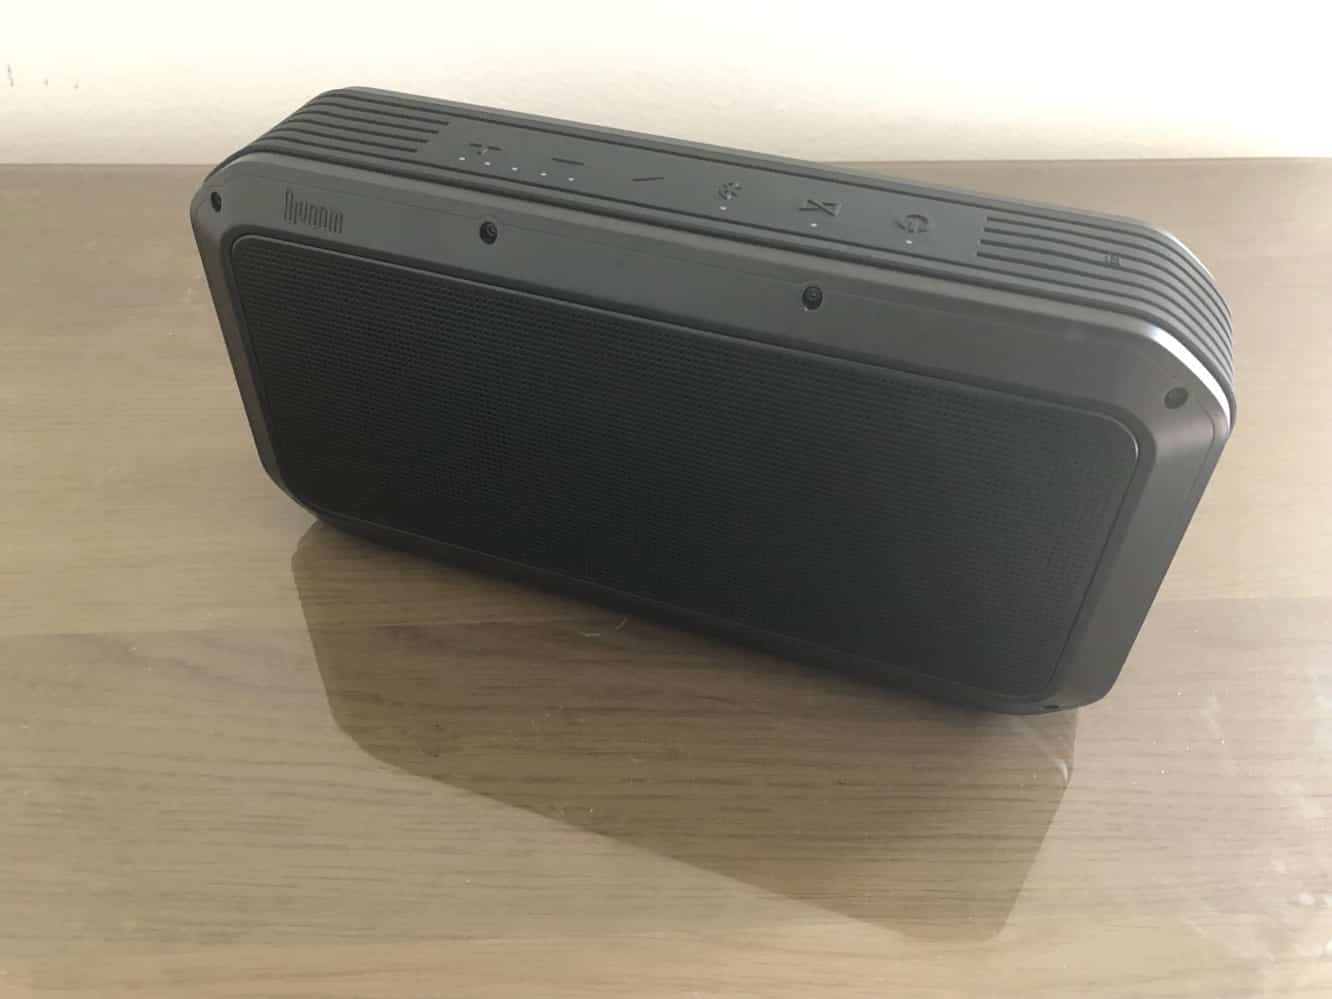 Review: Divoom Voombox Pro Rugged Portable Wireless Speaker